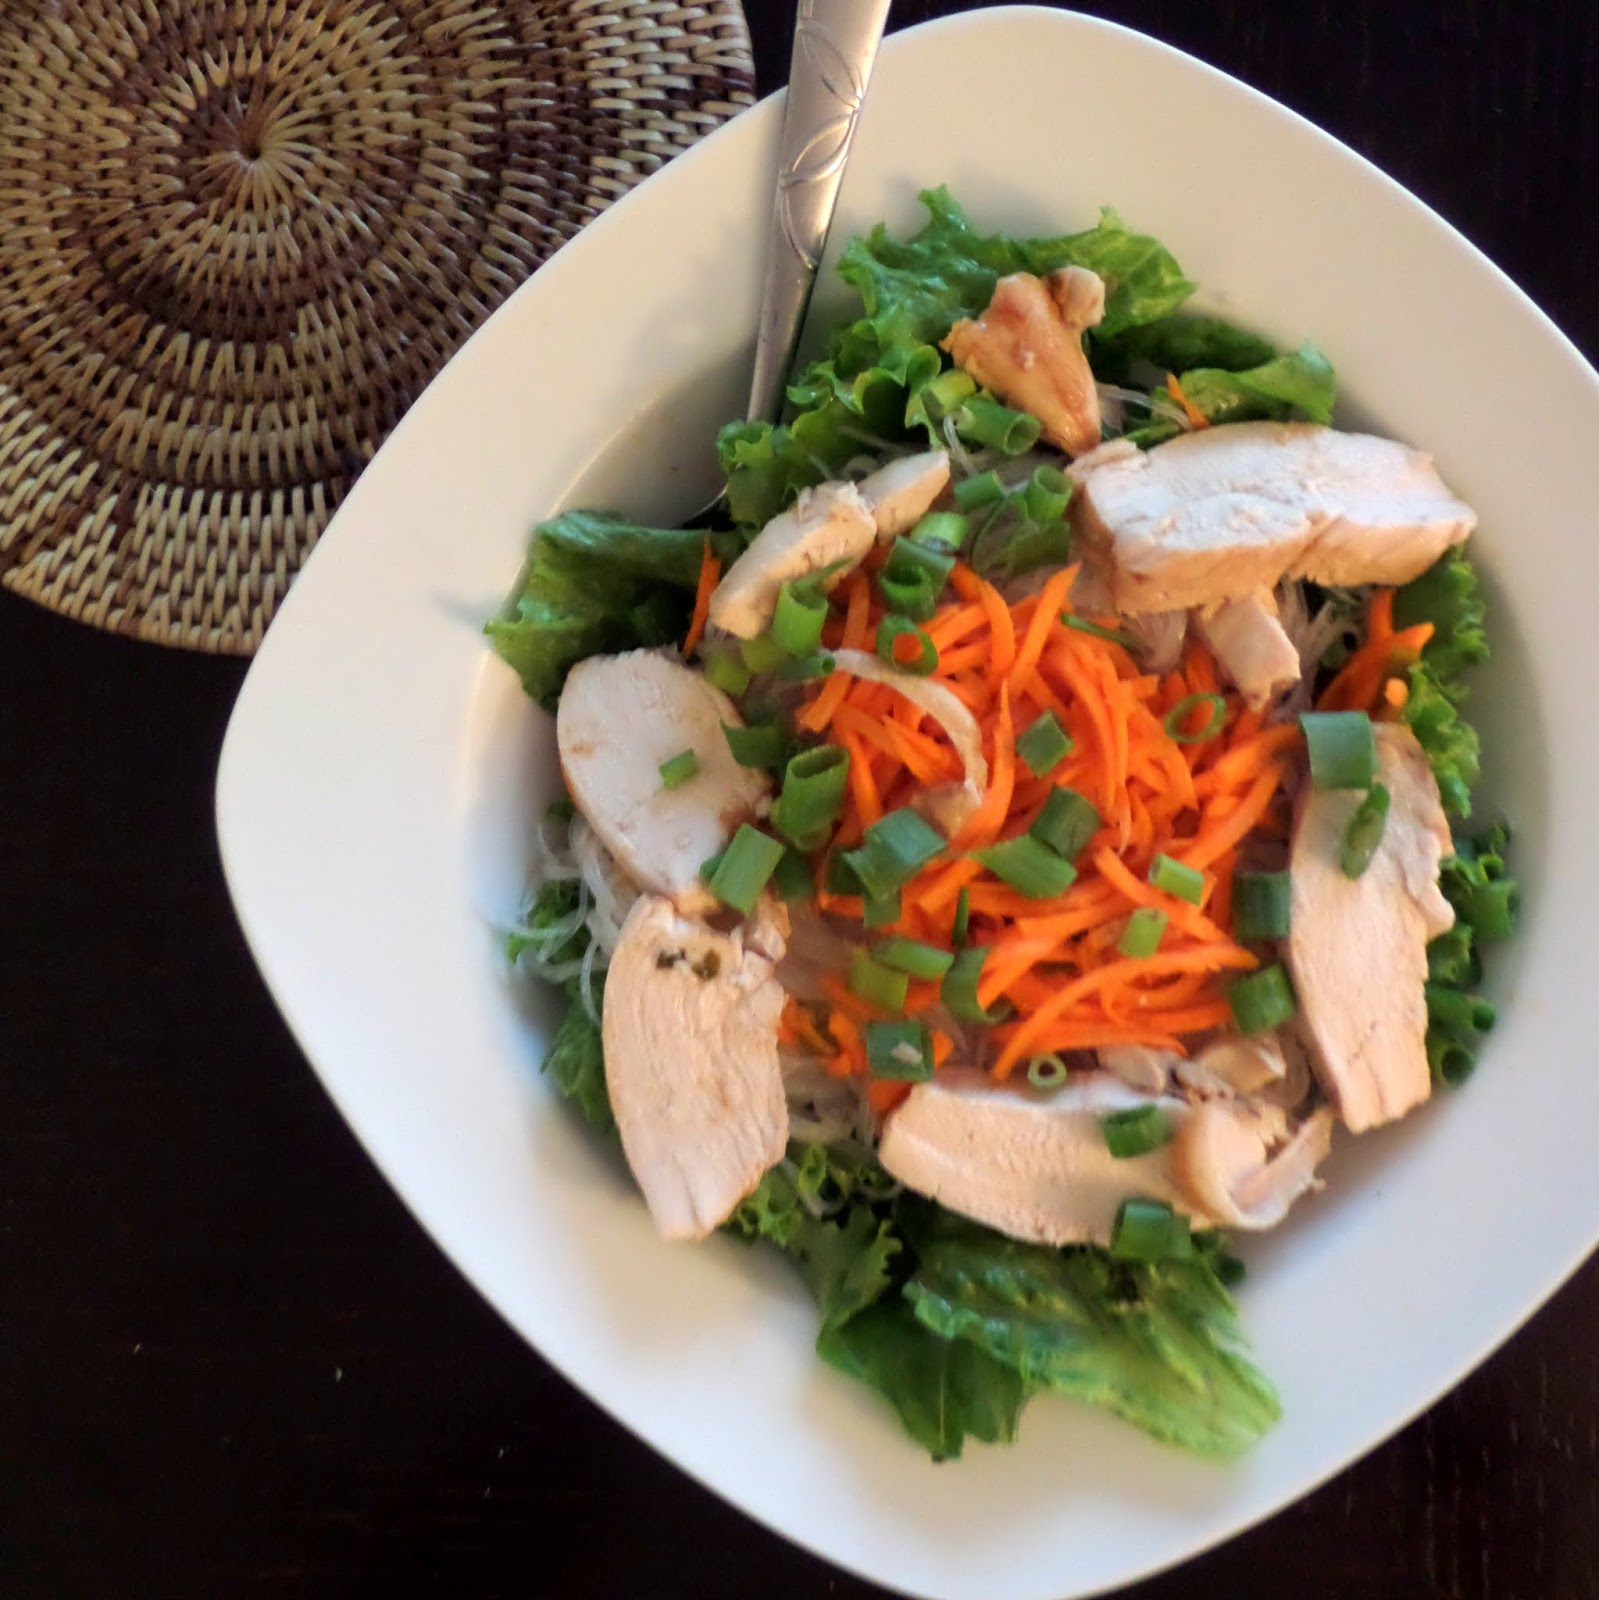 Lemongrass Chicken Vermicelli:  A fresh salad with herbs, vegetables, and rice noodles topped with juicy chicken flavored with lemongrass and other southeast Asian flavors.